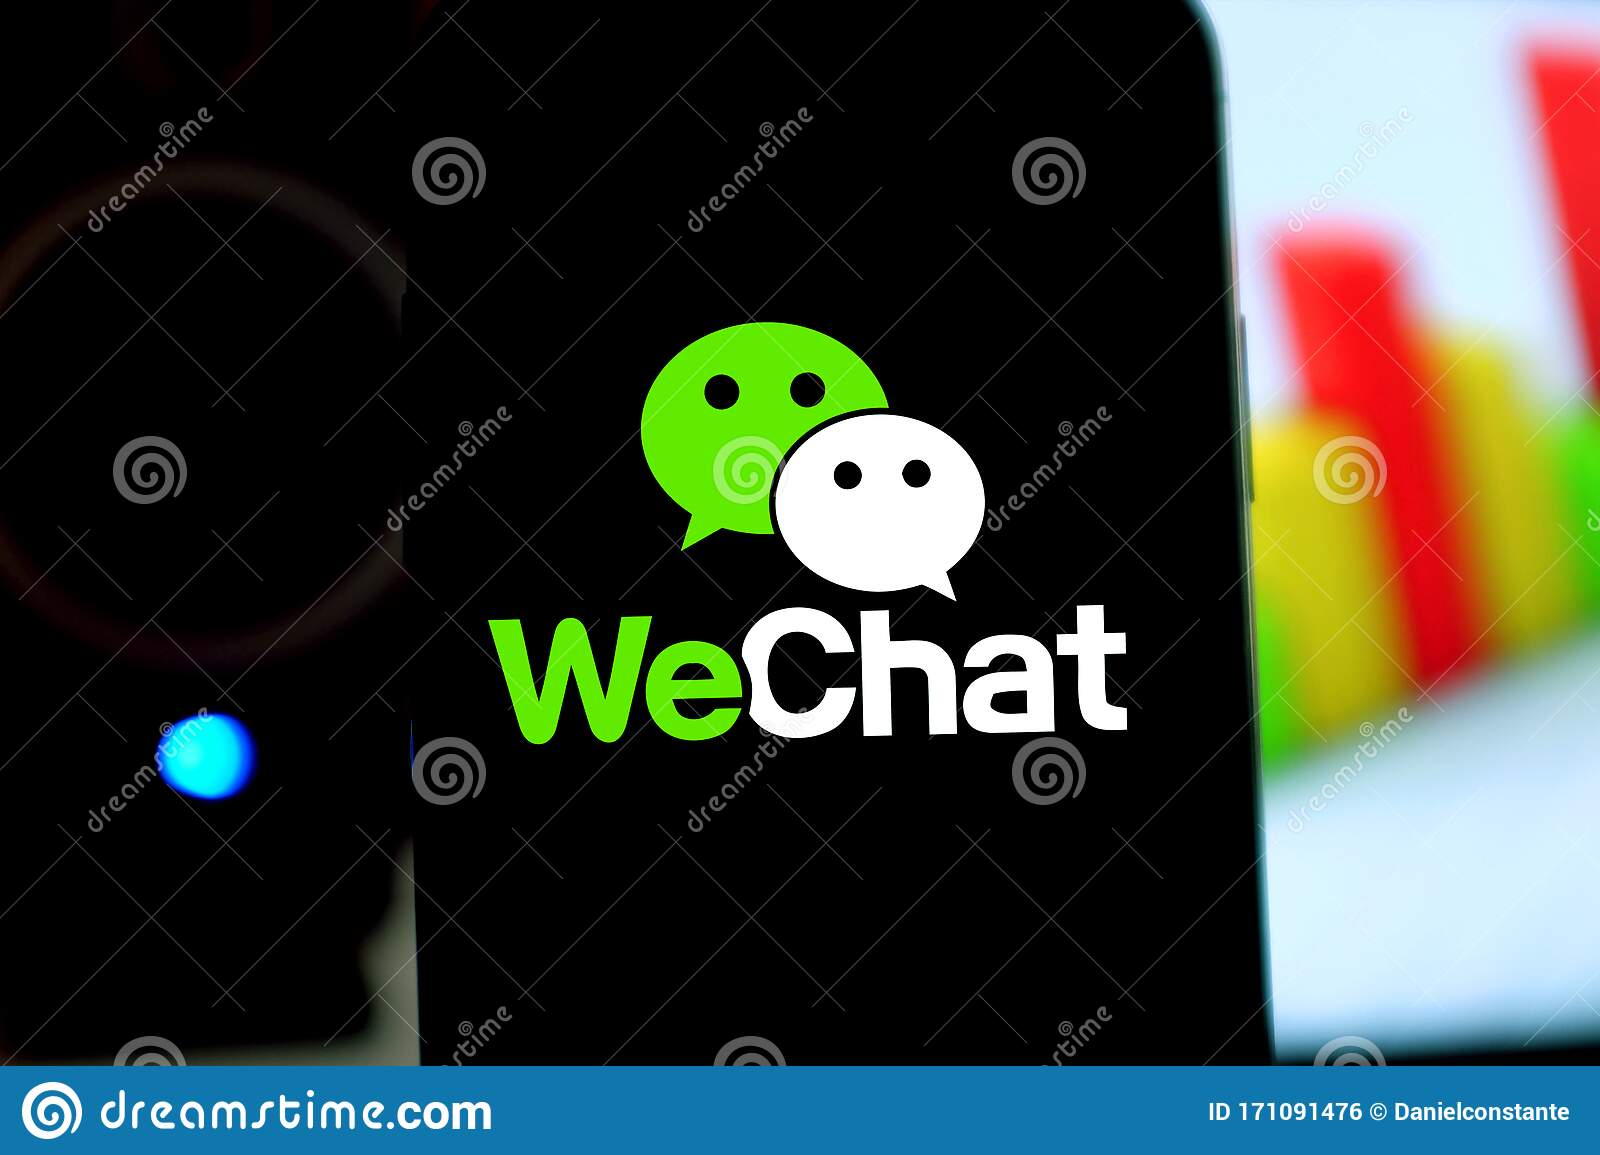 Wechat log in with id